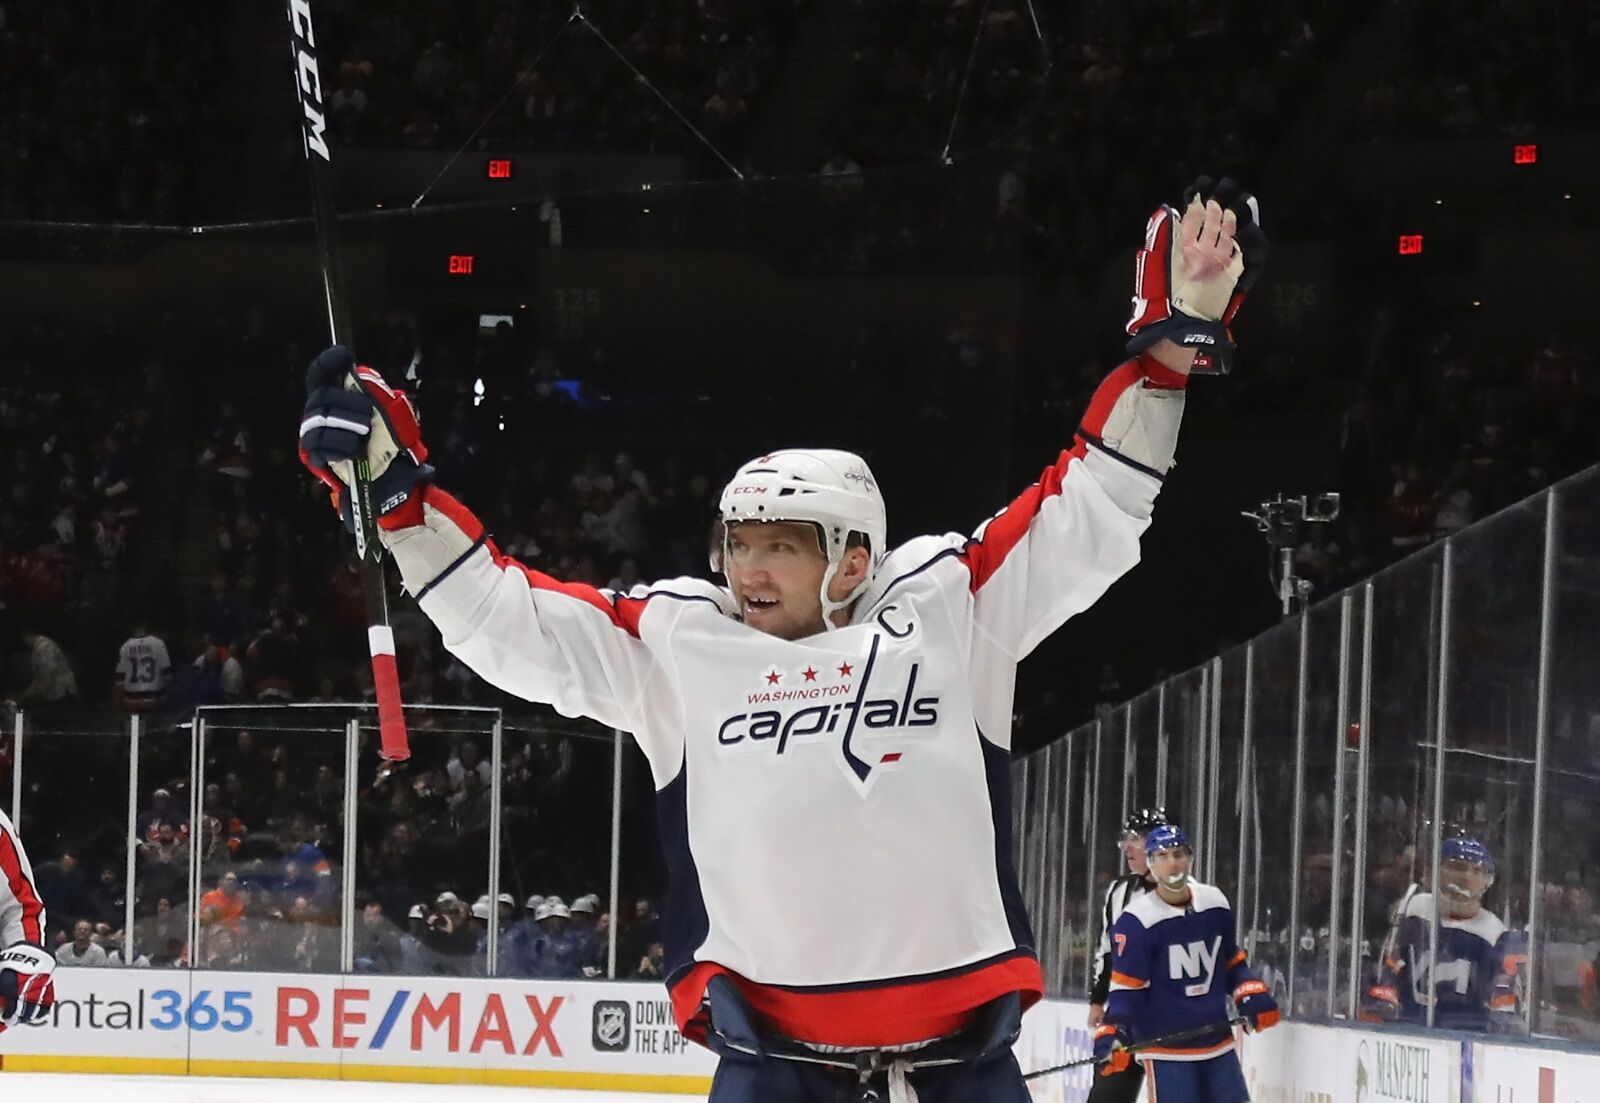 Projecting when Alex Ovechkin will pass Wayne Gretzky's goal-scoring record